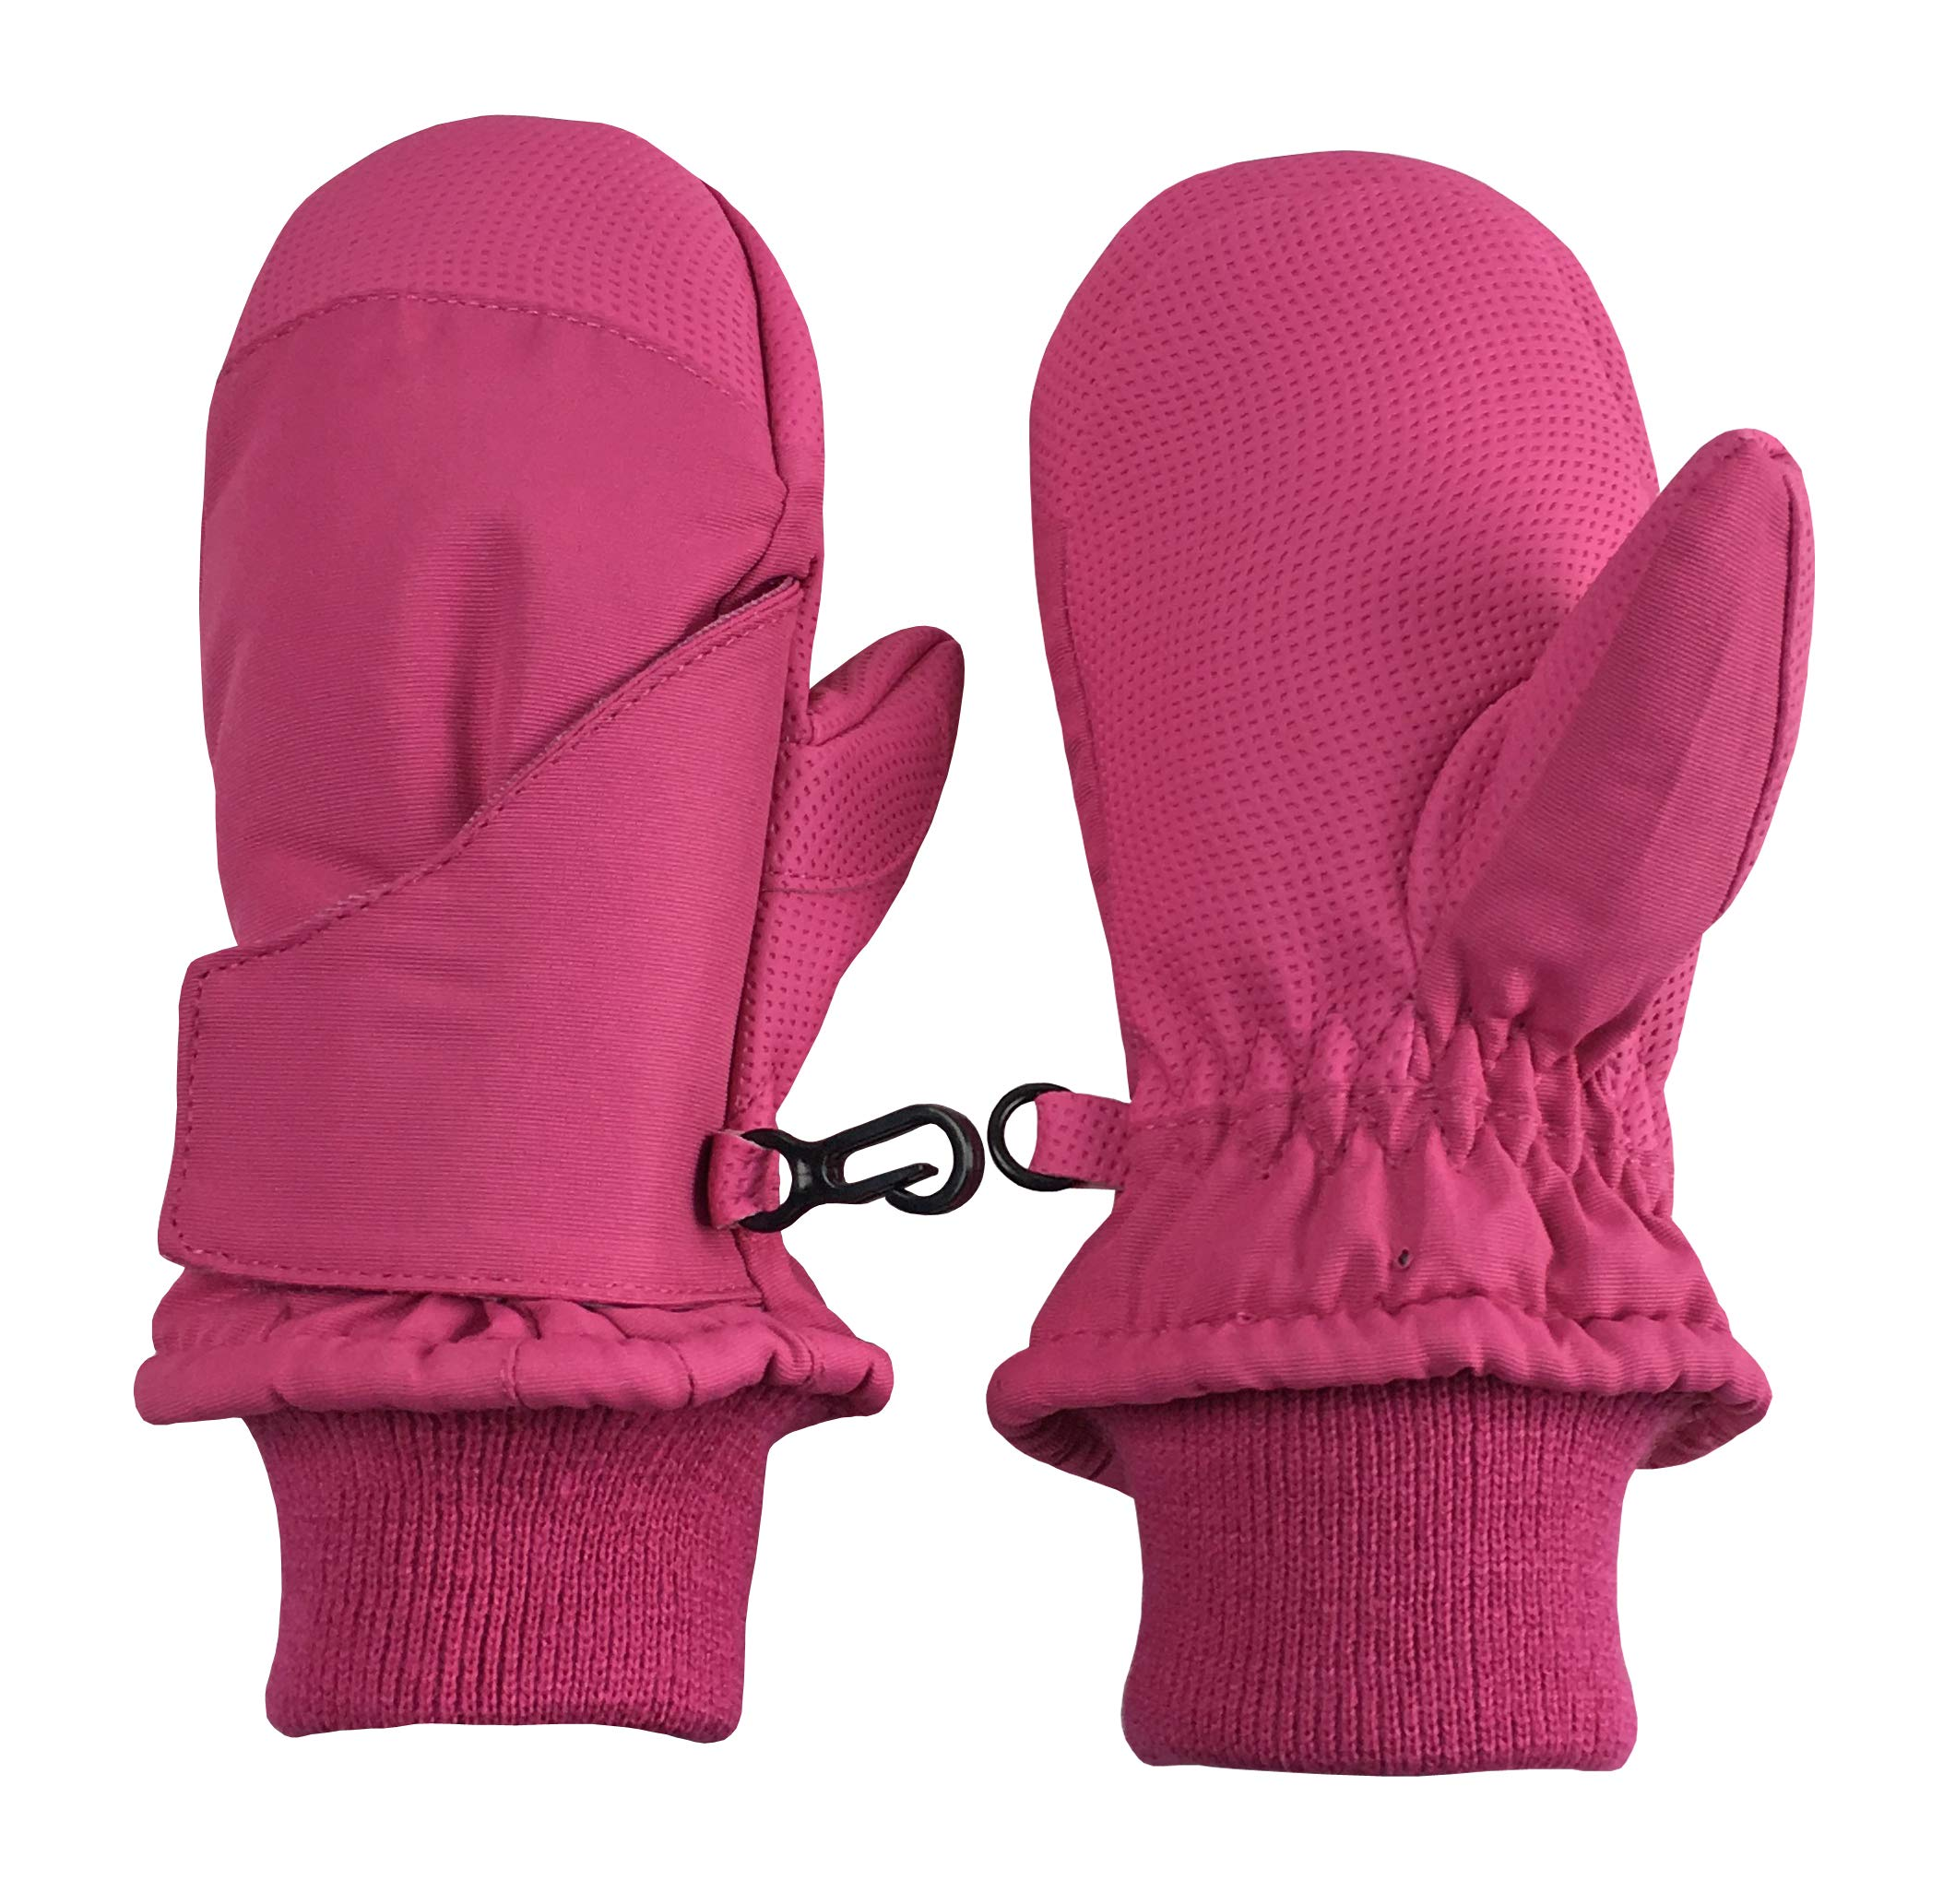 N'Ice Caps Kids and Baby Easy-On Wrap Waterproof Thinsulate Winter Snow Mitten (Fuchsia 2, 1-2 Years) by N'Ice Caps